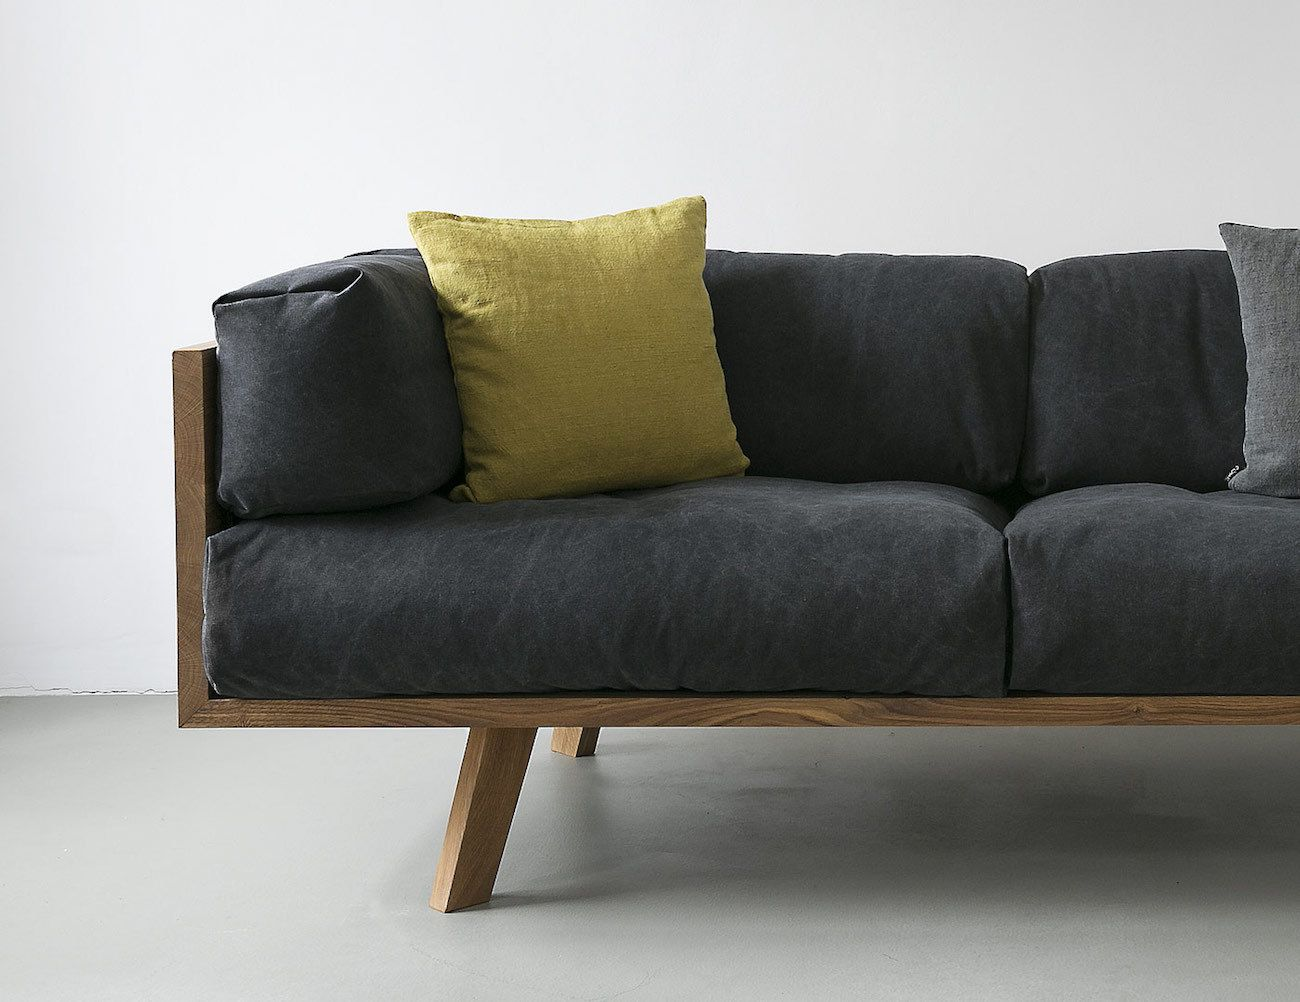 The Oak Linen Sofa from NUTSANDWOODS ... - The Oak Linen Sofa From NUTSANDWOODS » Gadget Flow